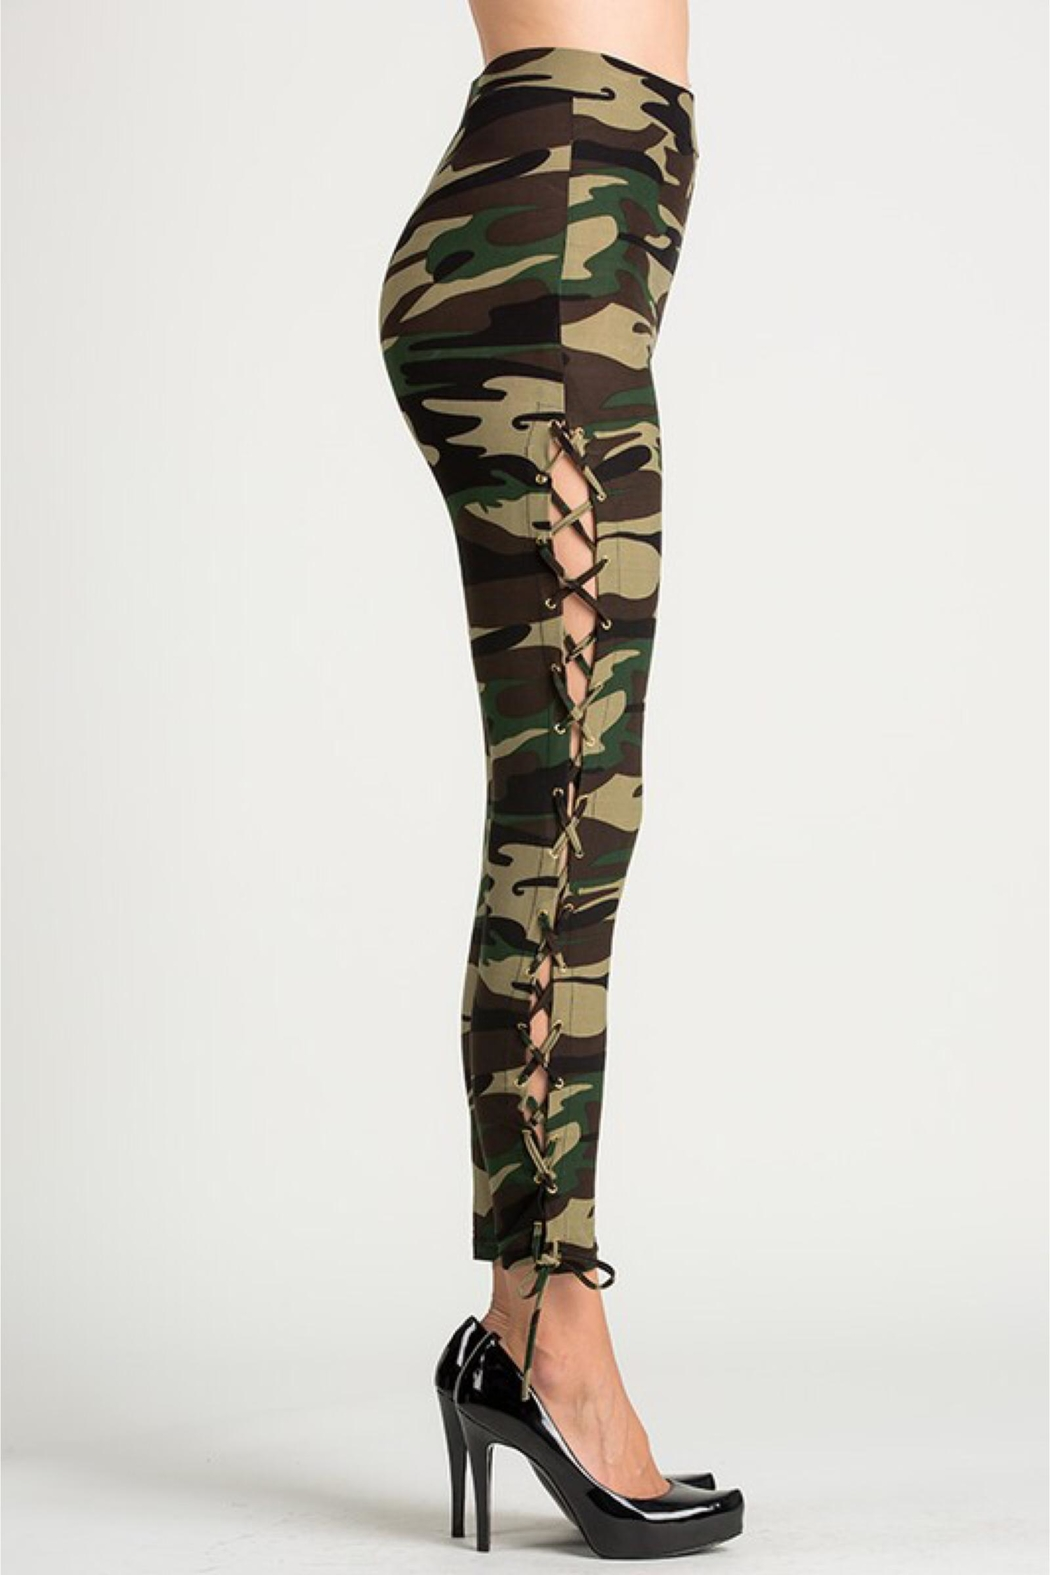 People Outfitter Camouflage Lace-Up Leggings - Front Full Image